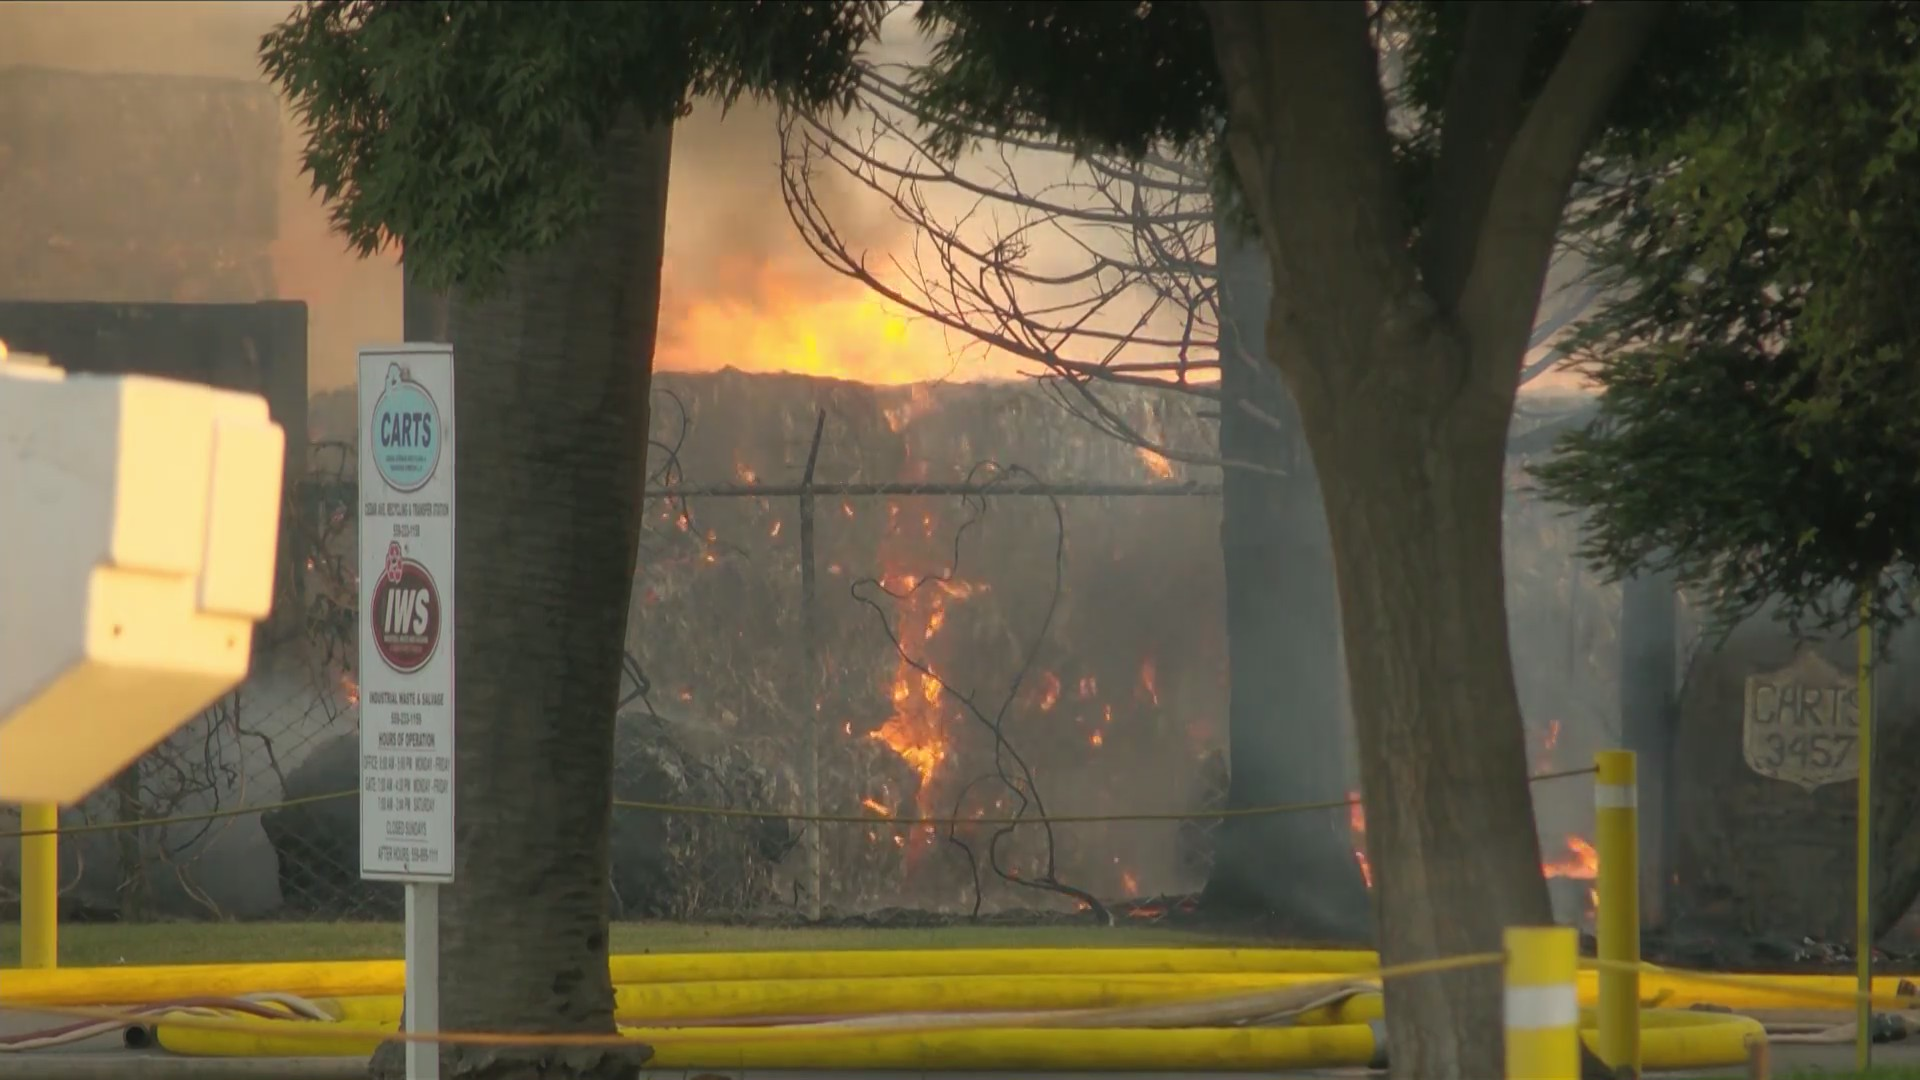 Off-duty firefighters called for cover in as Fresno recycling plant burns